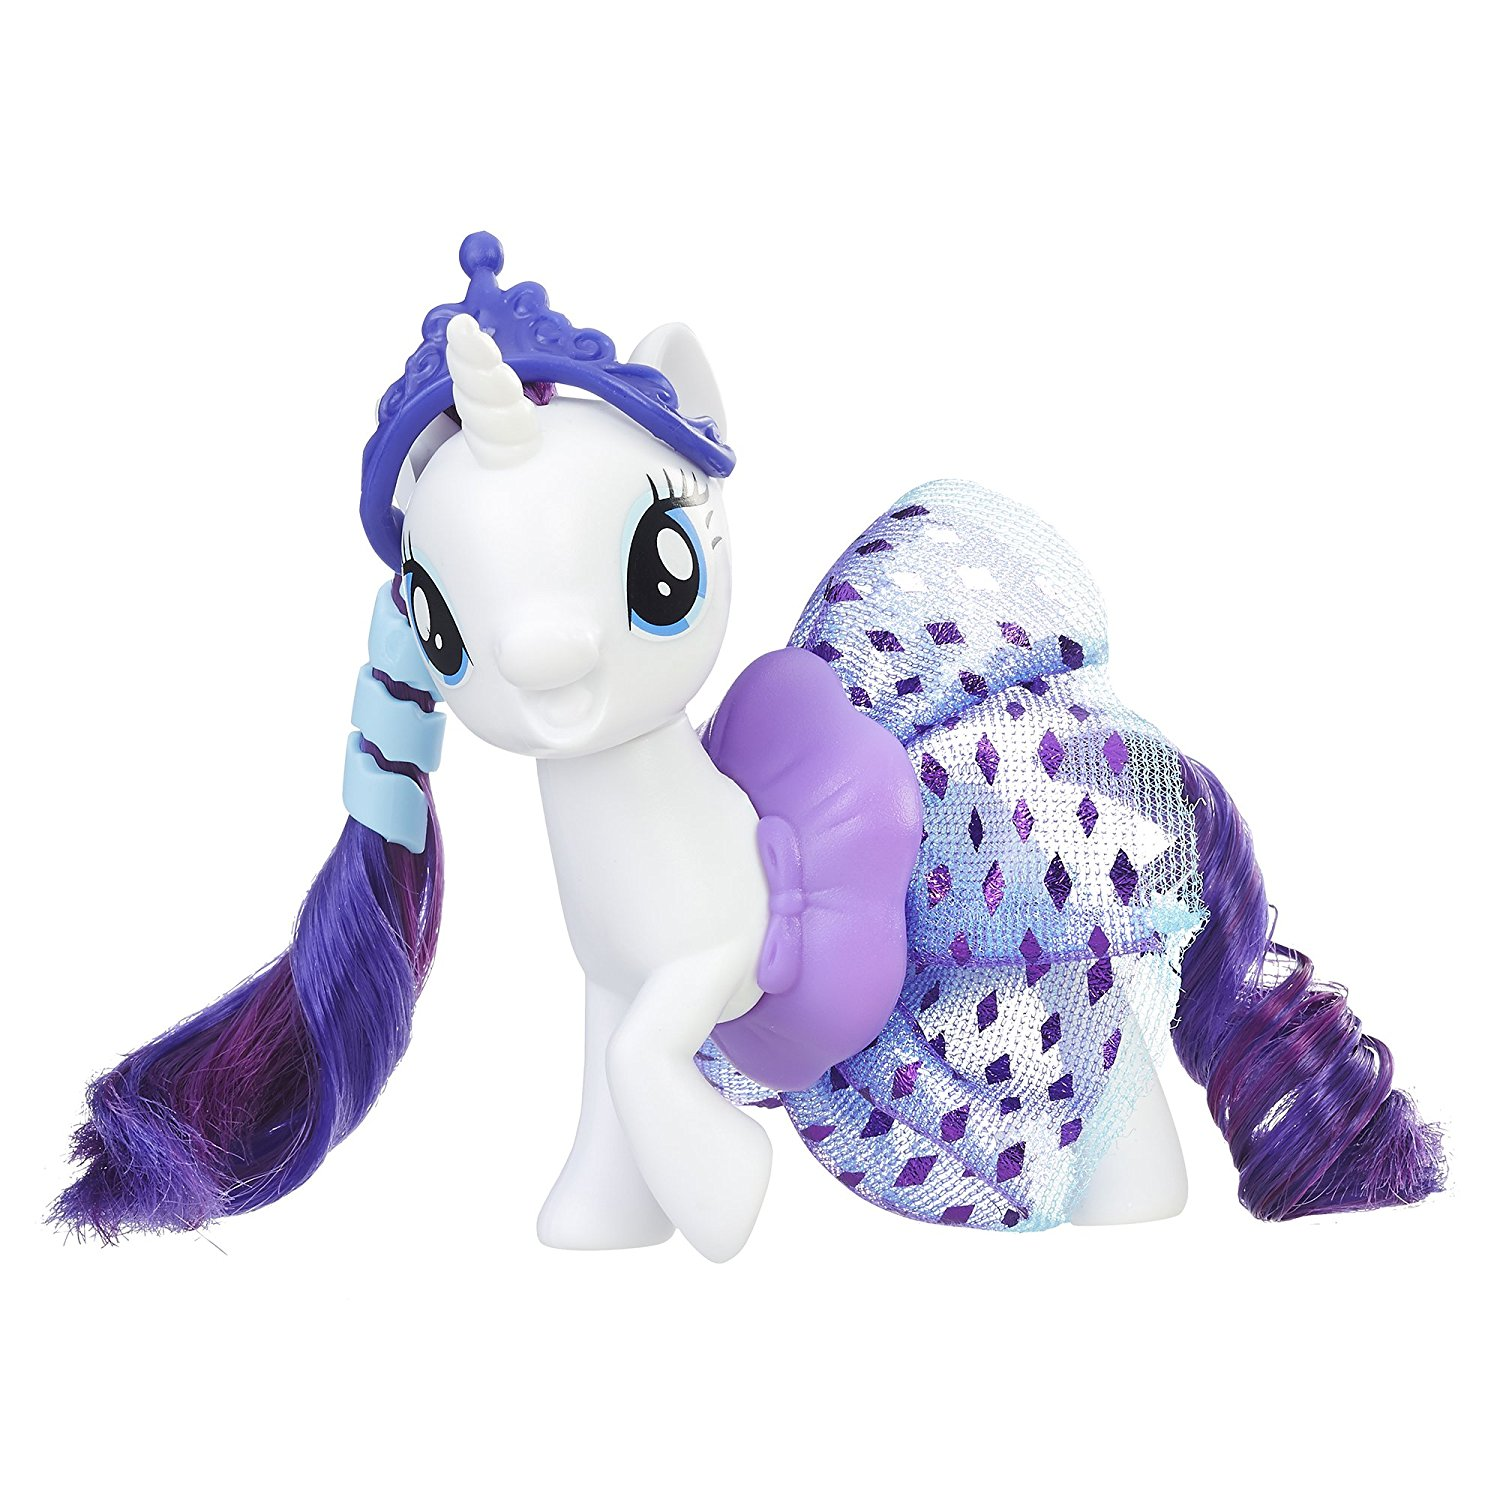 New My Little Pony The Movie Rarity Fashion Doll Available On My Little Pony